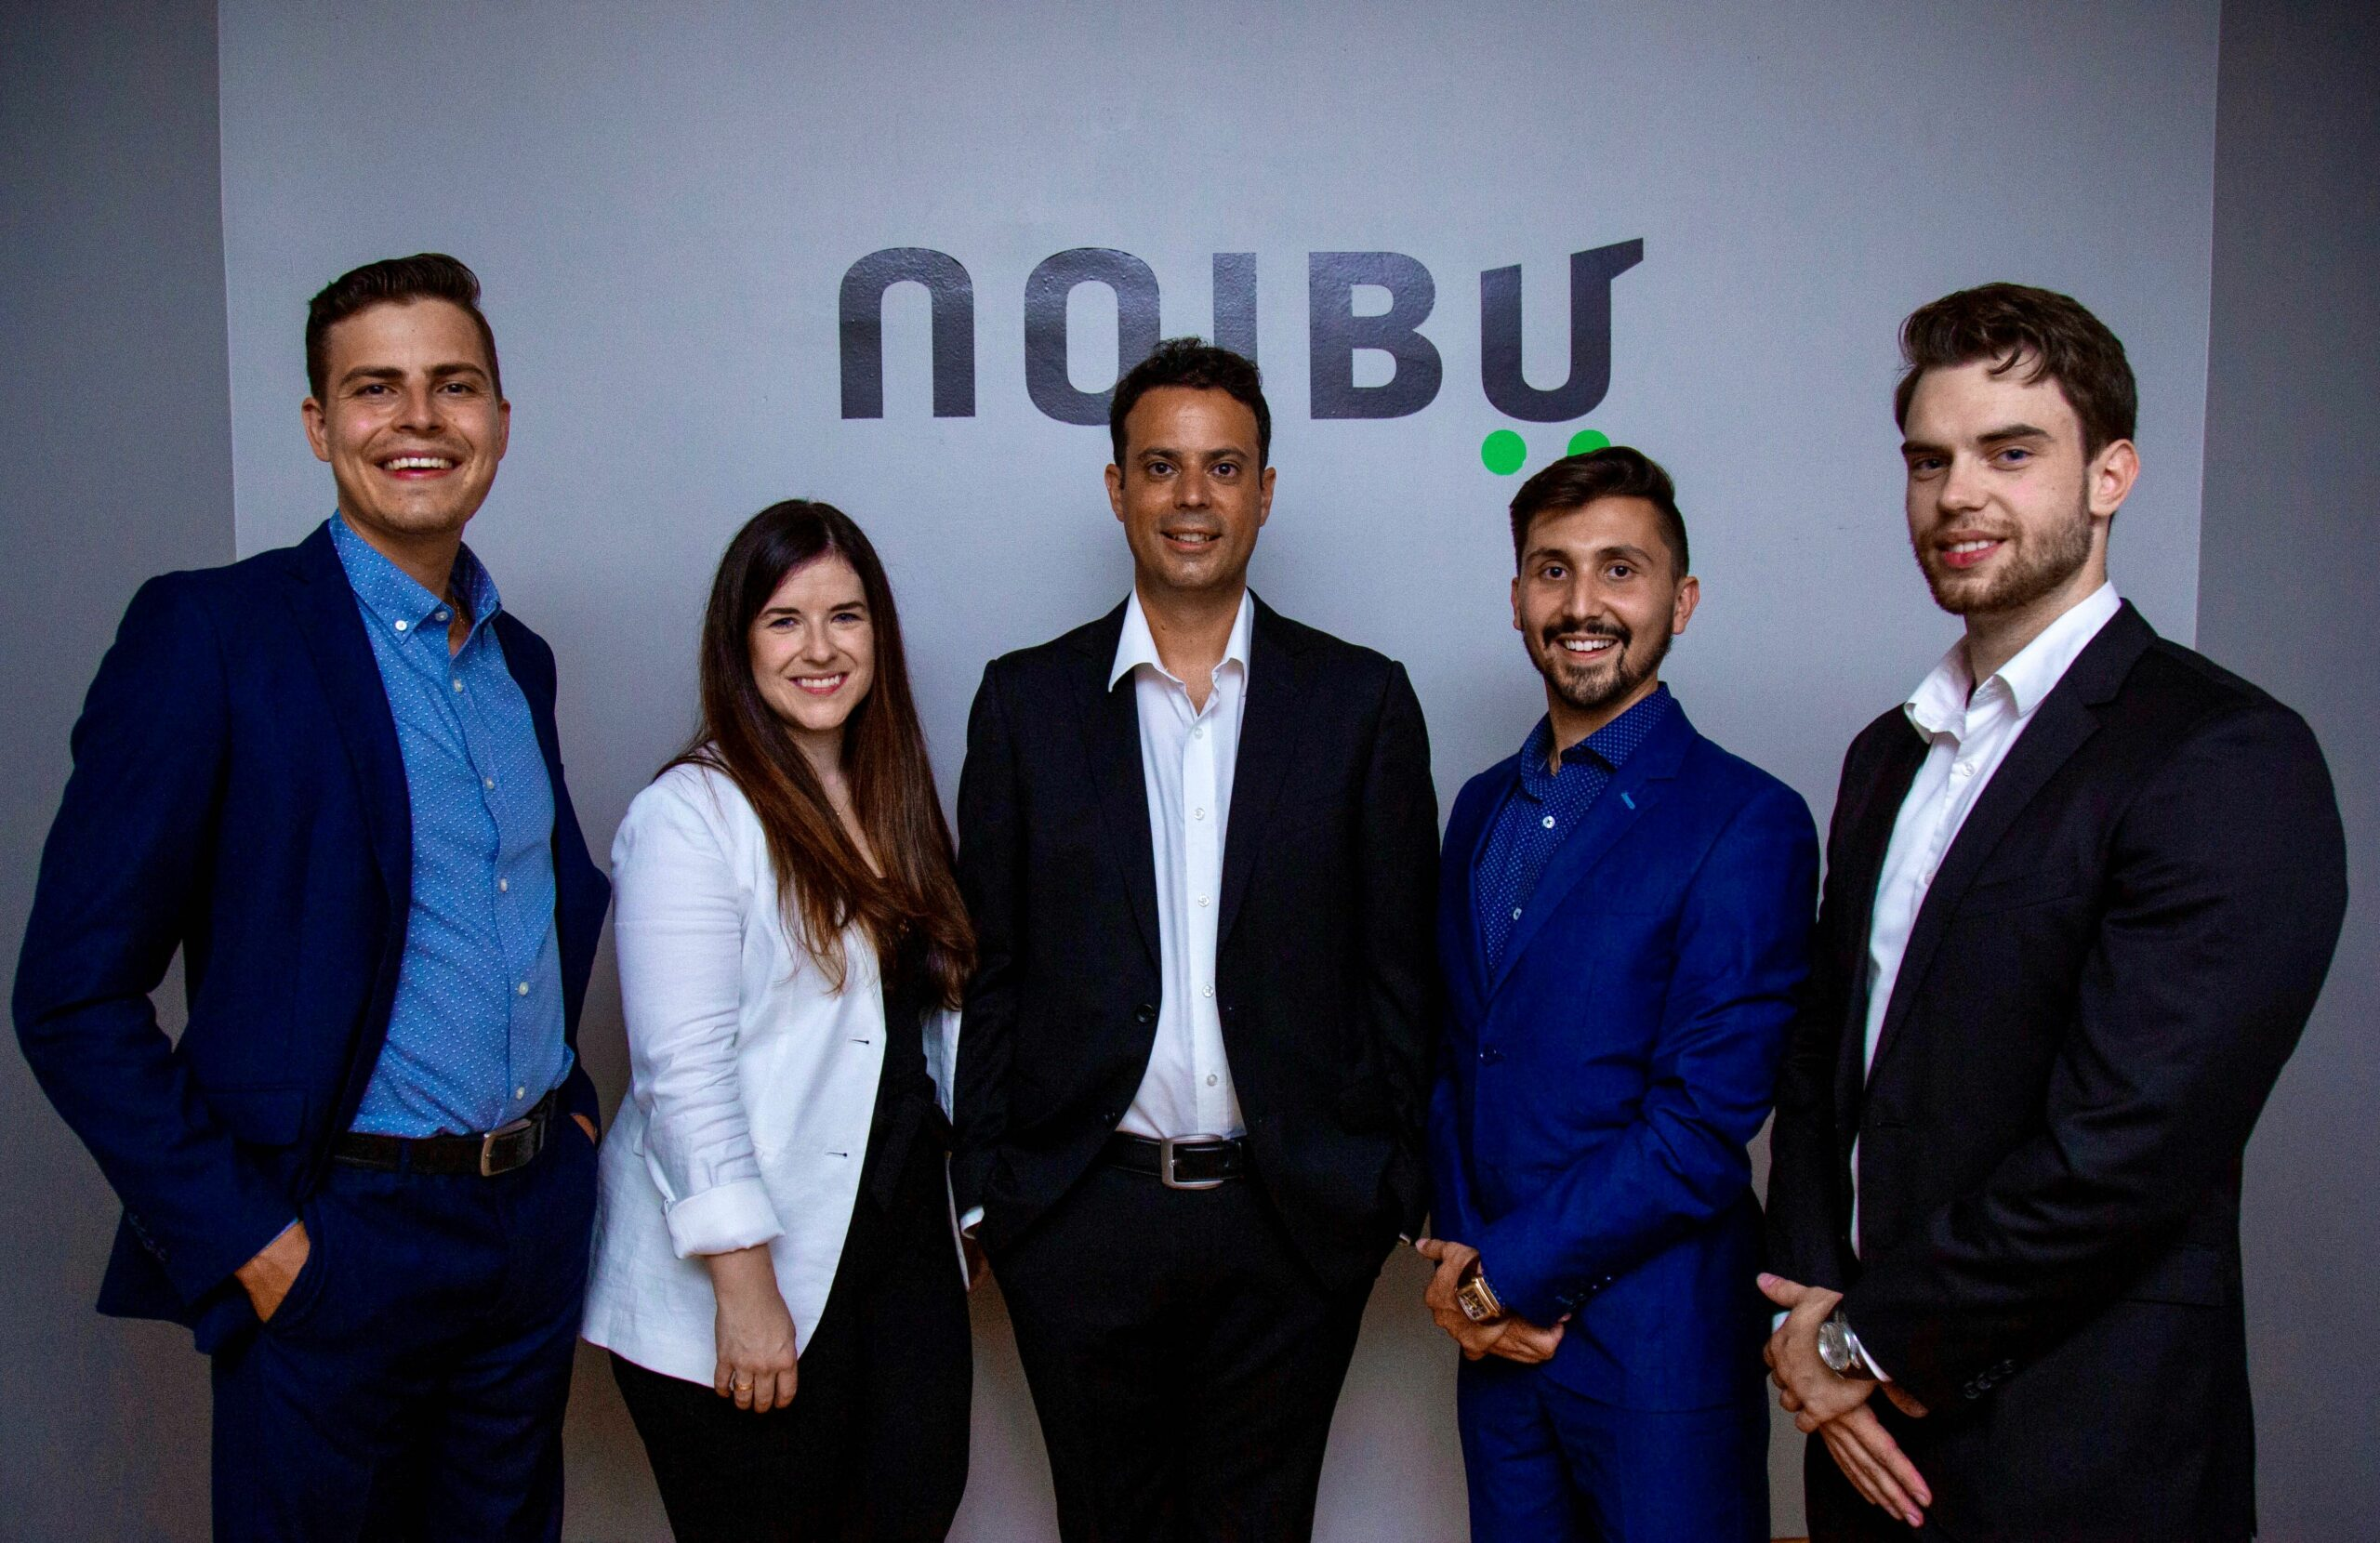 Noibu Leadership team